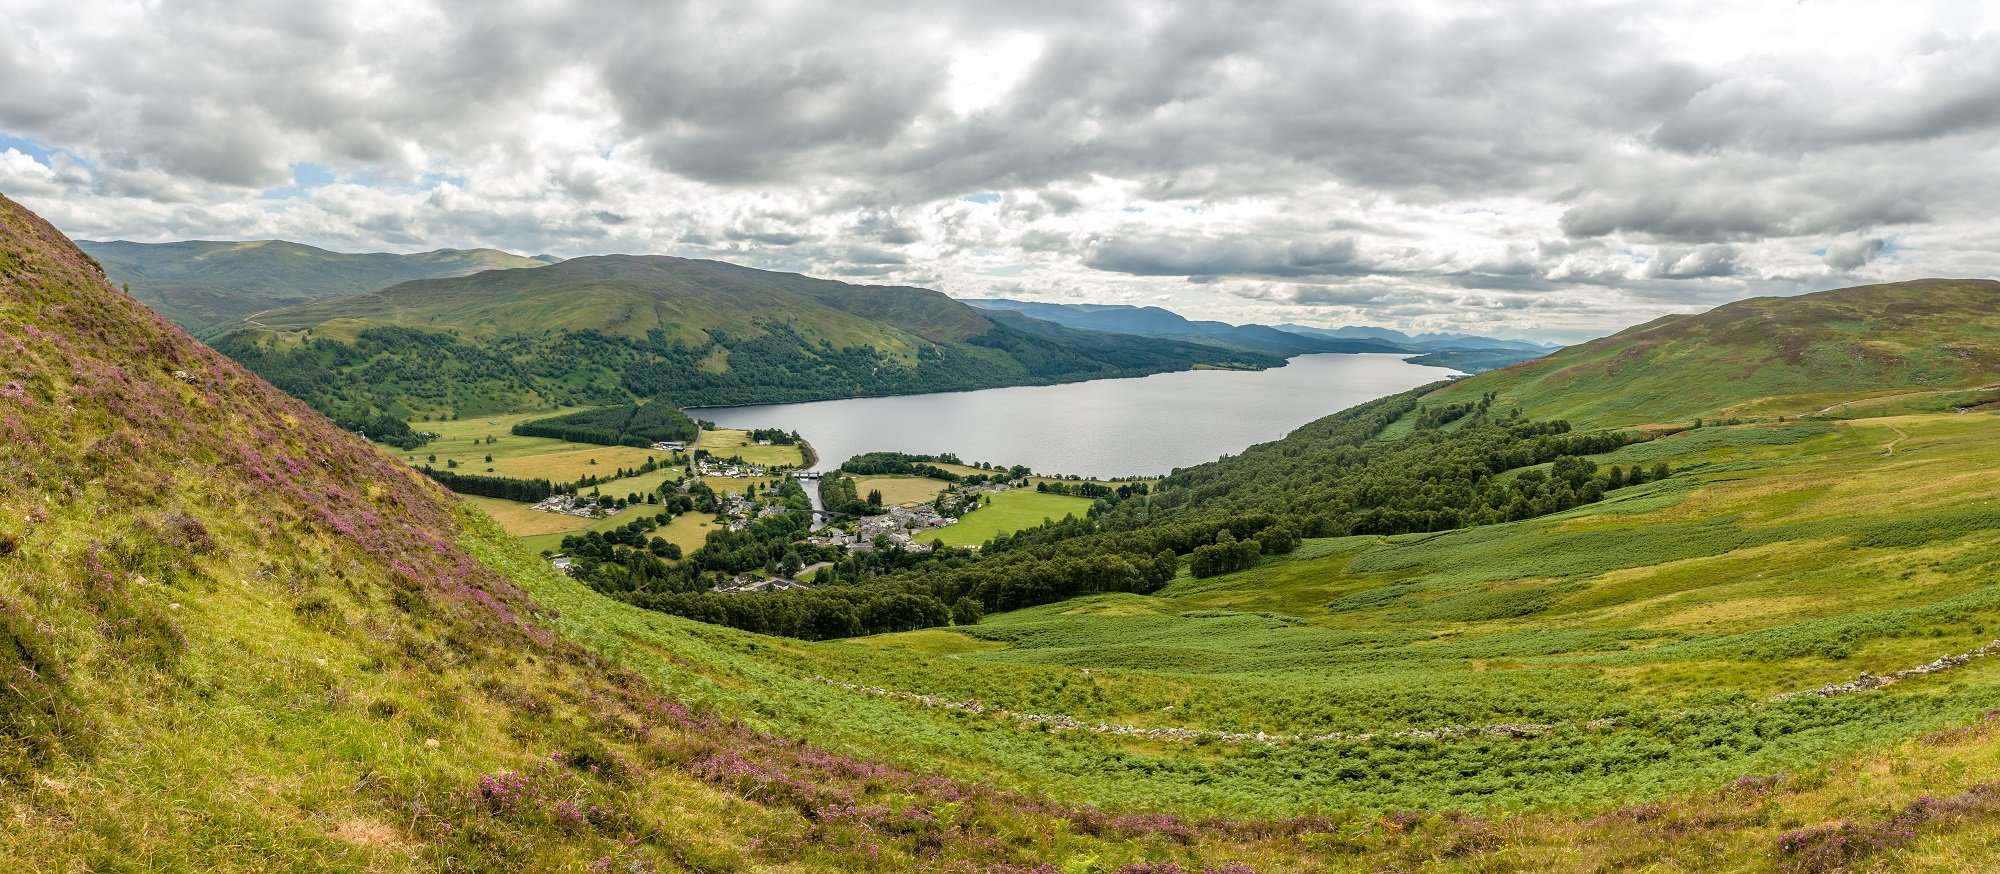 14 of the Most Beautiful, Must-See Places in Highland Scotland